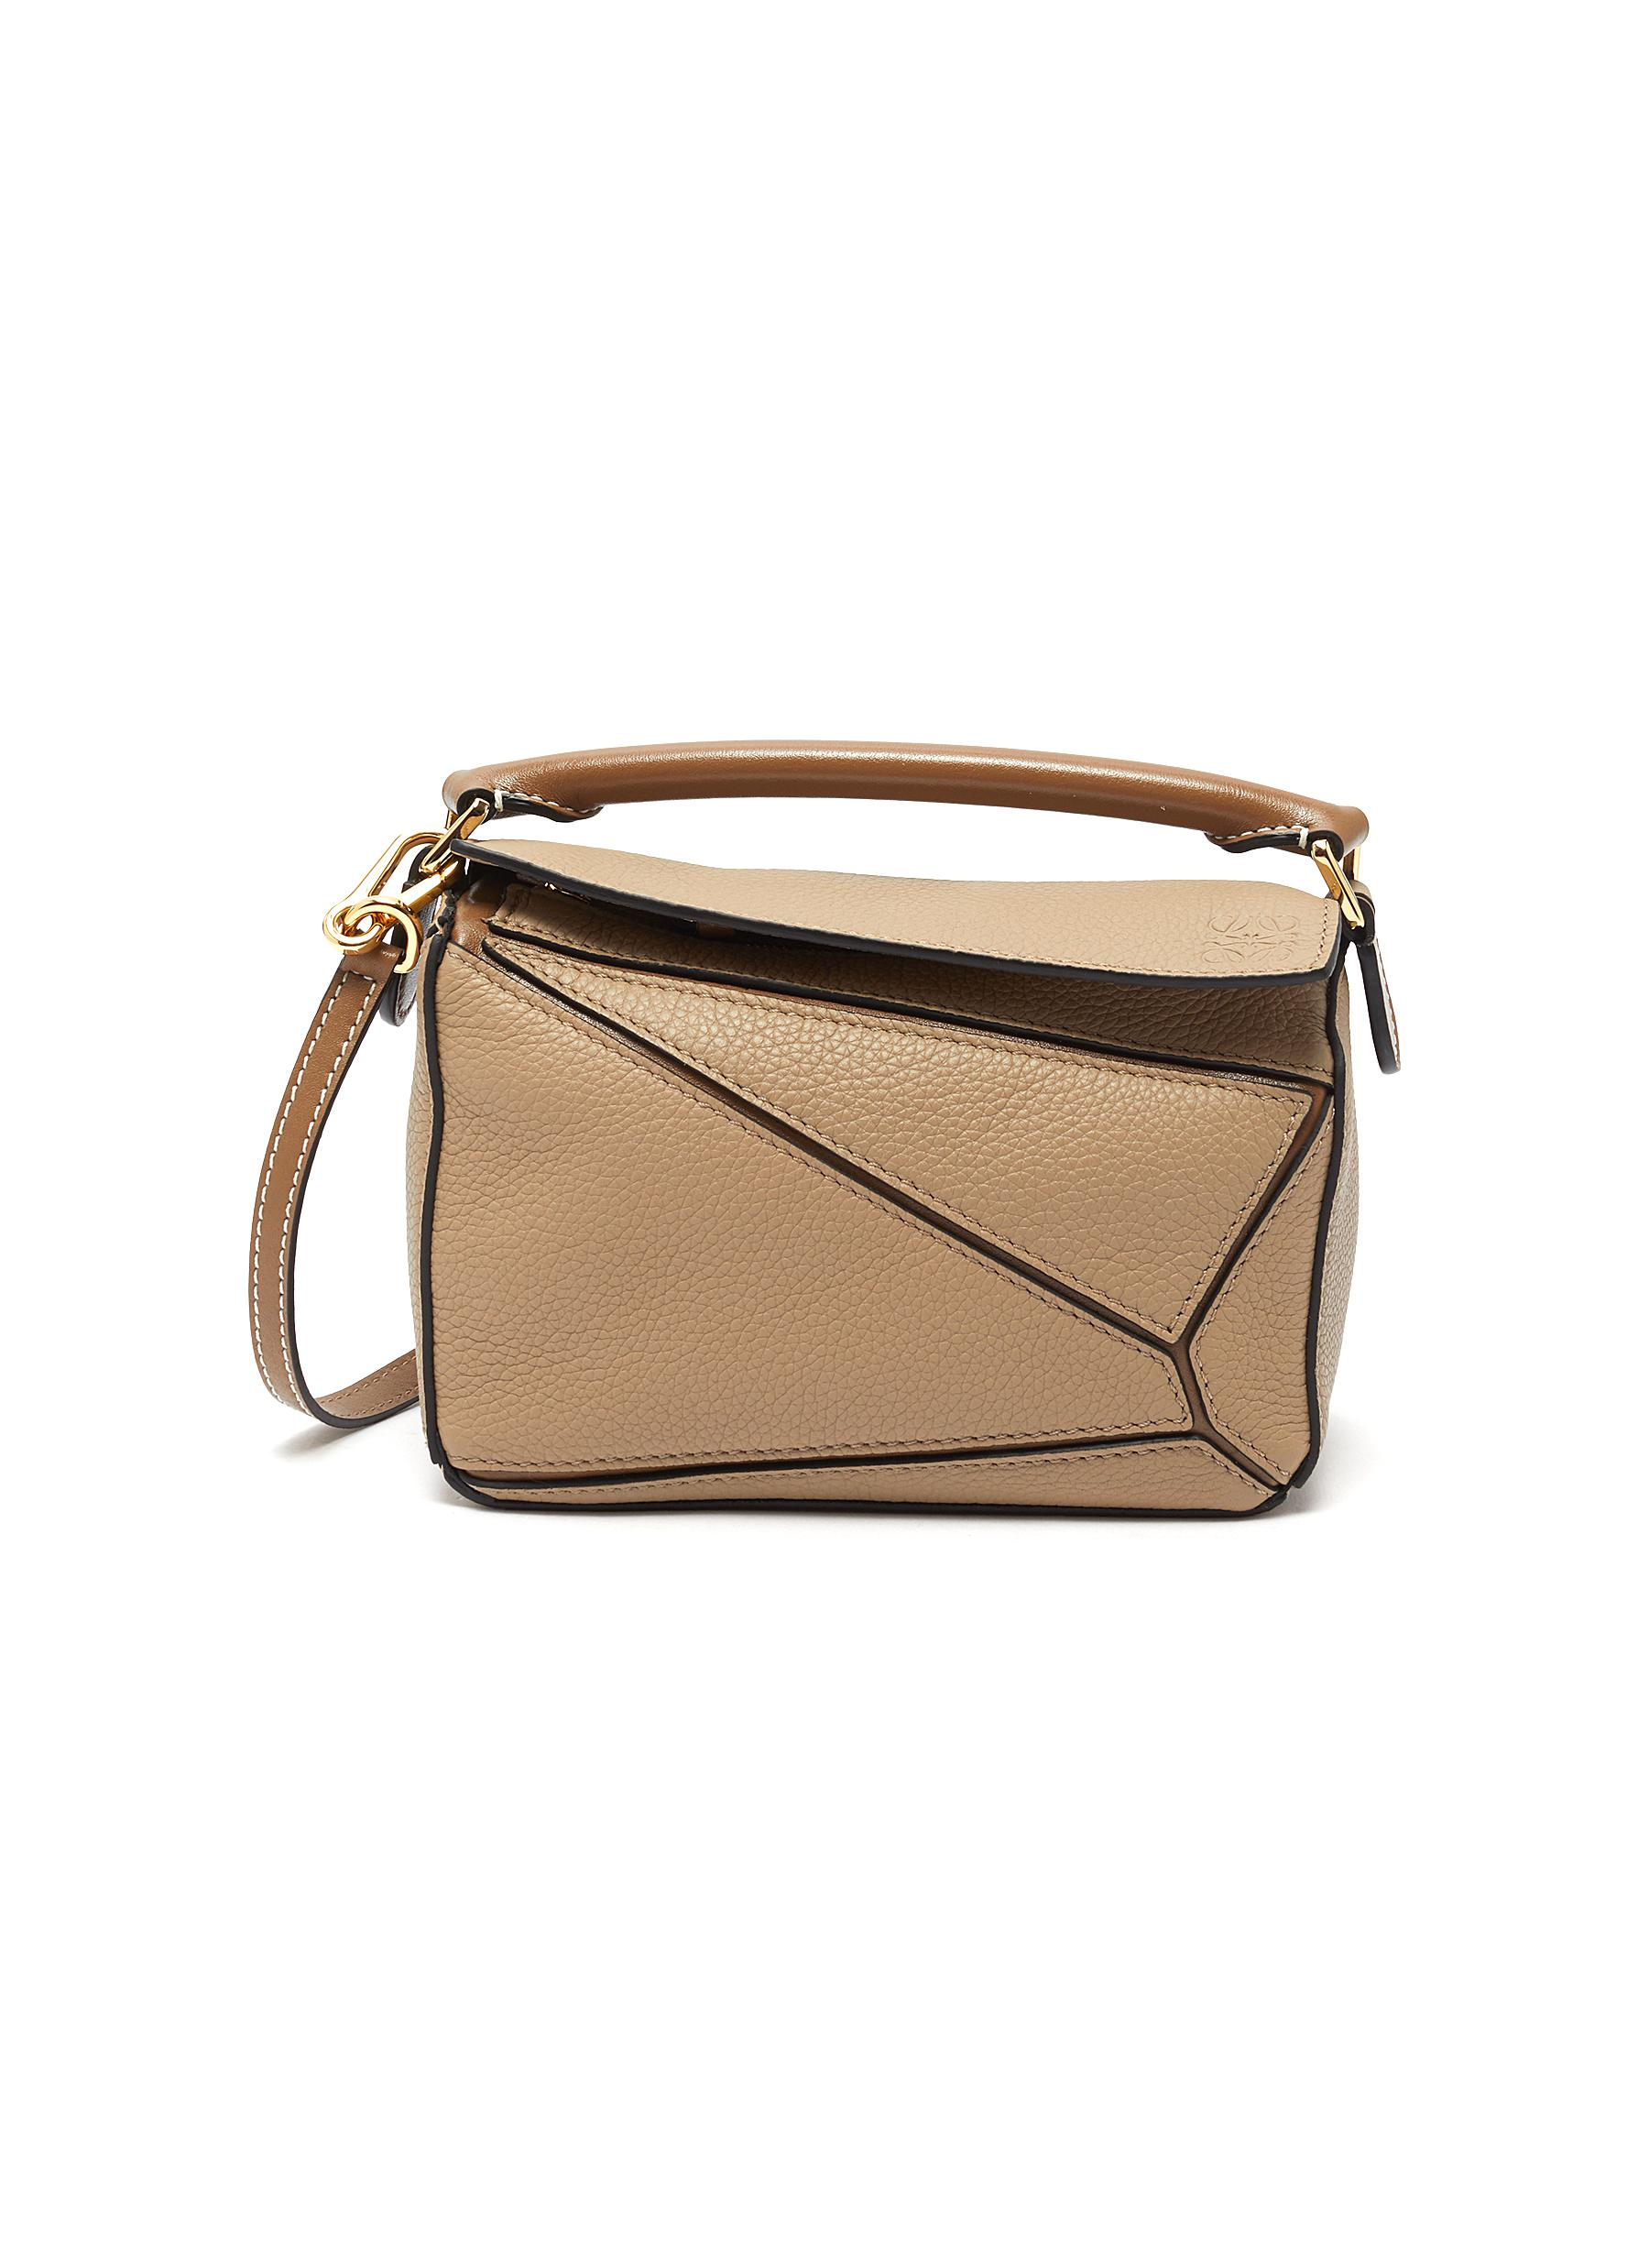 Loewe 'puzzle' Mini Leather Bag In Neutral